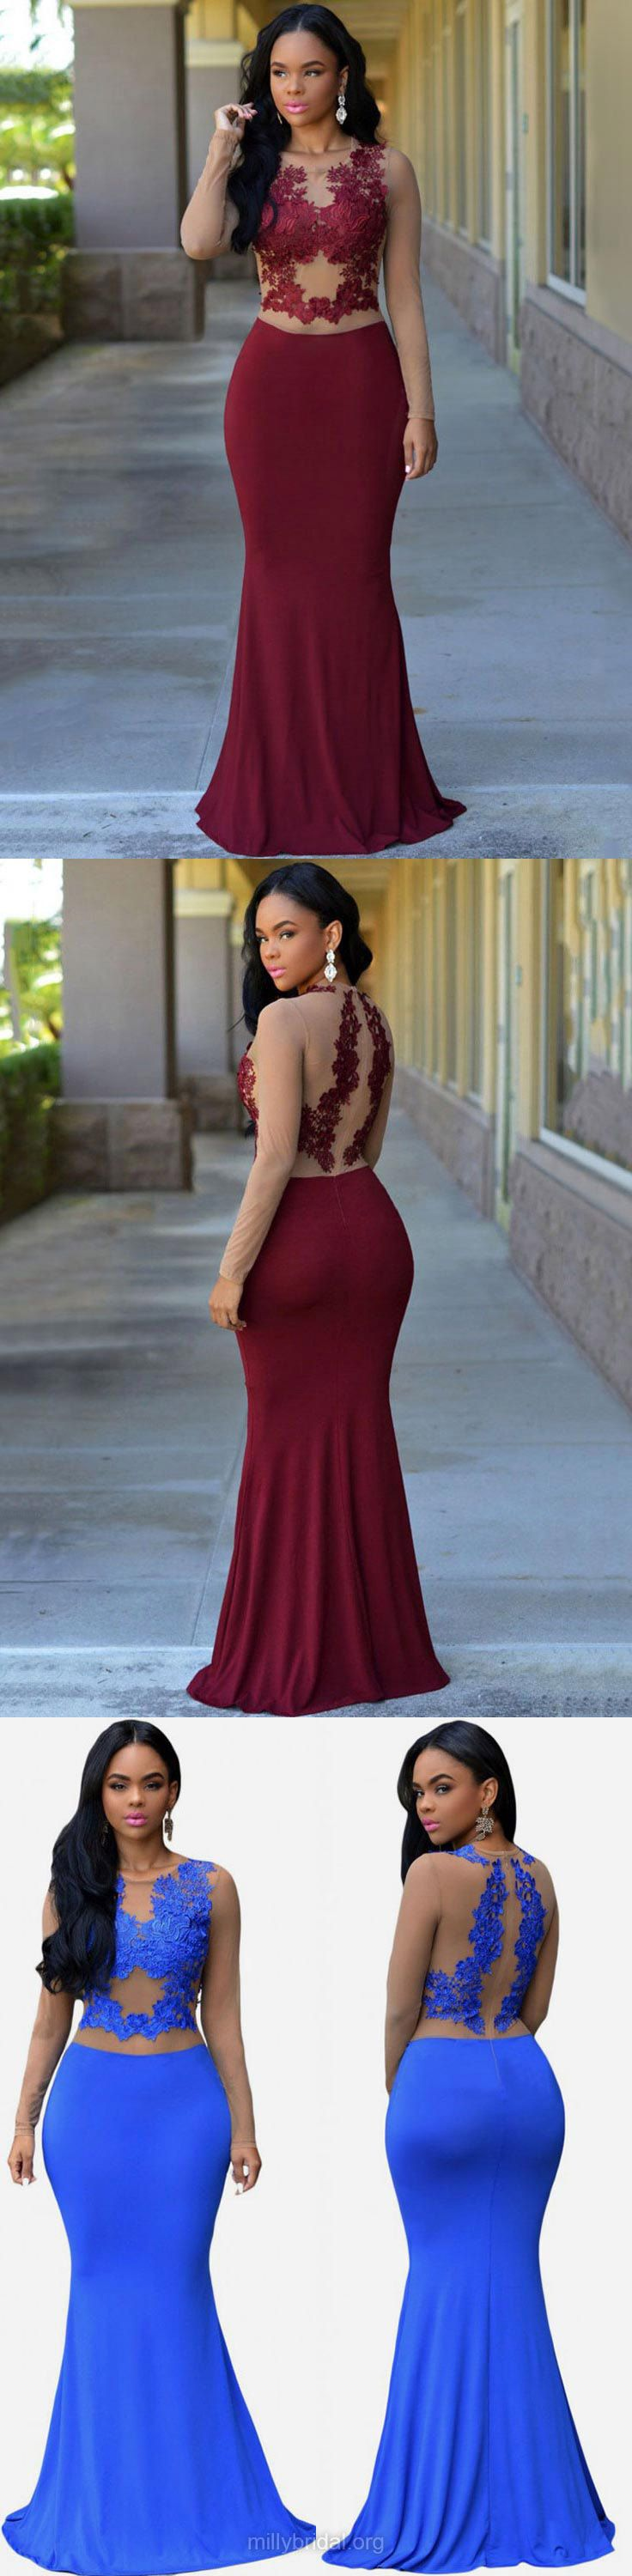 Burgundy prom dresses long prom dresses trumpetmermaid prom